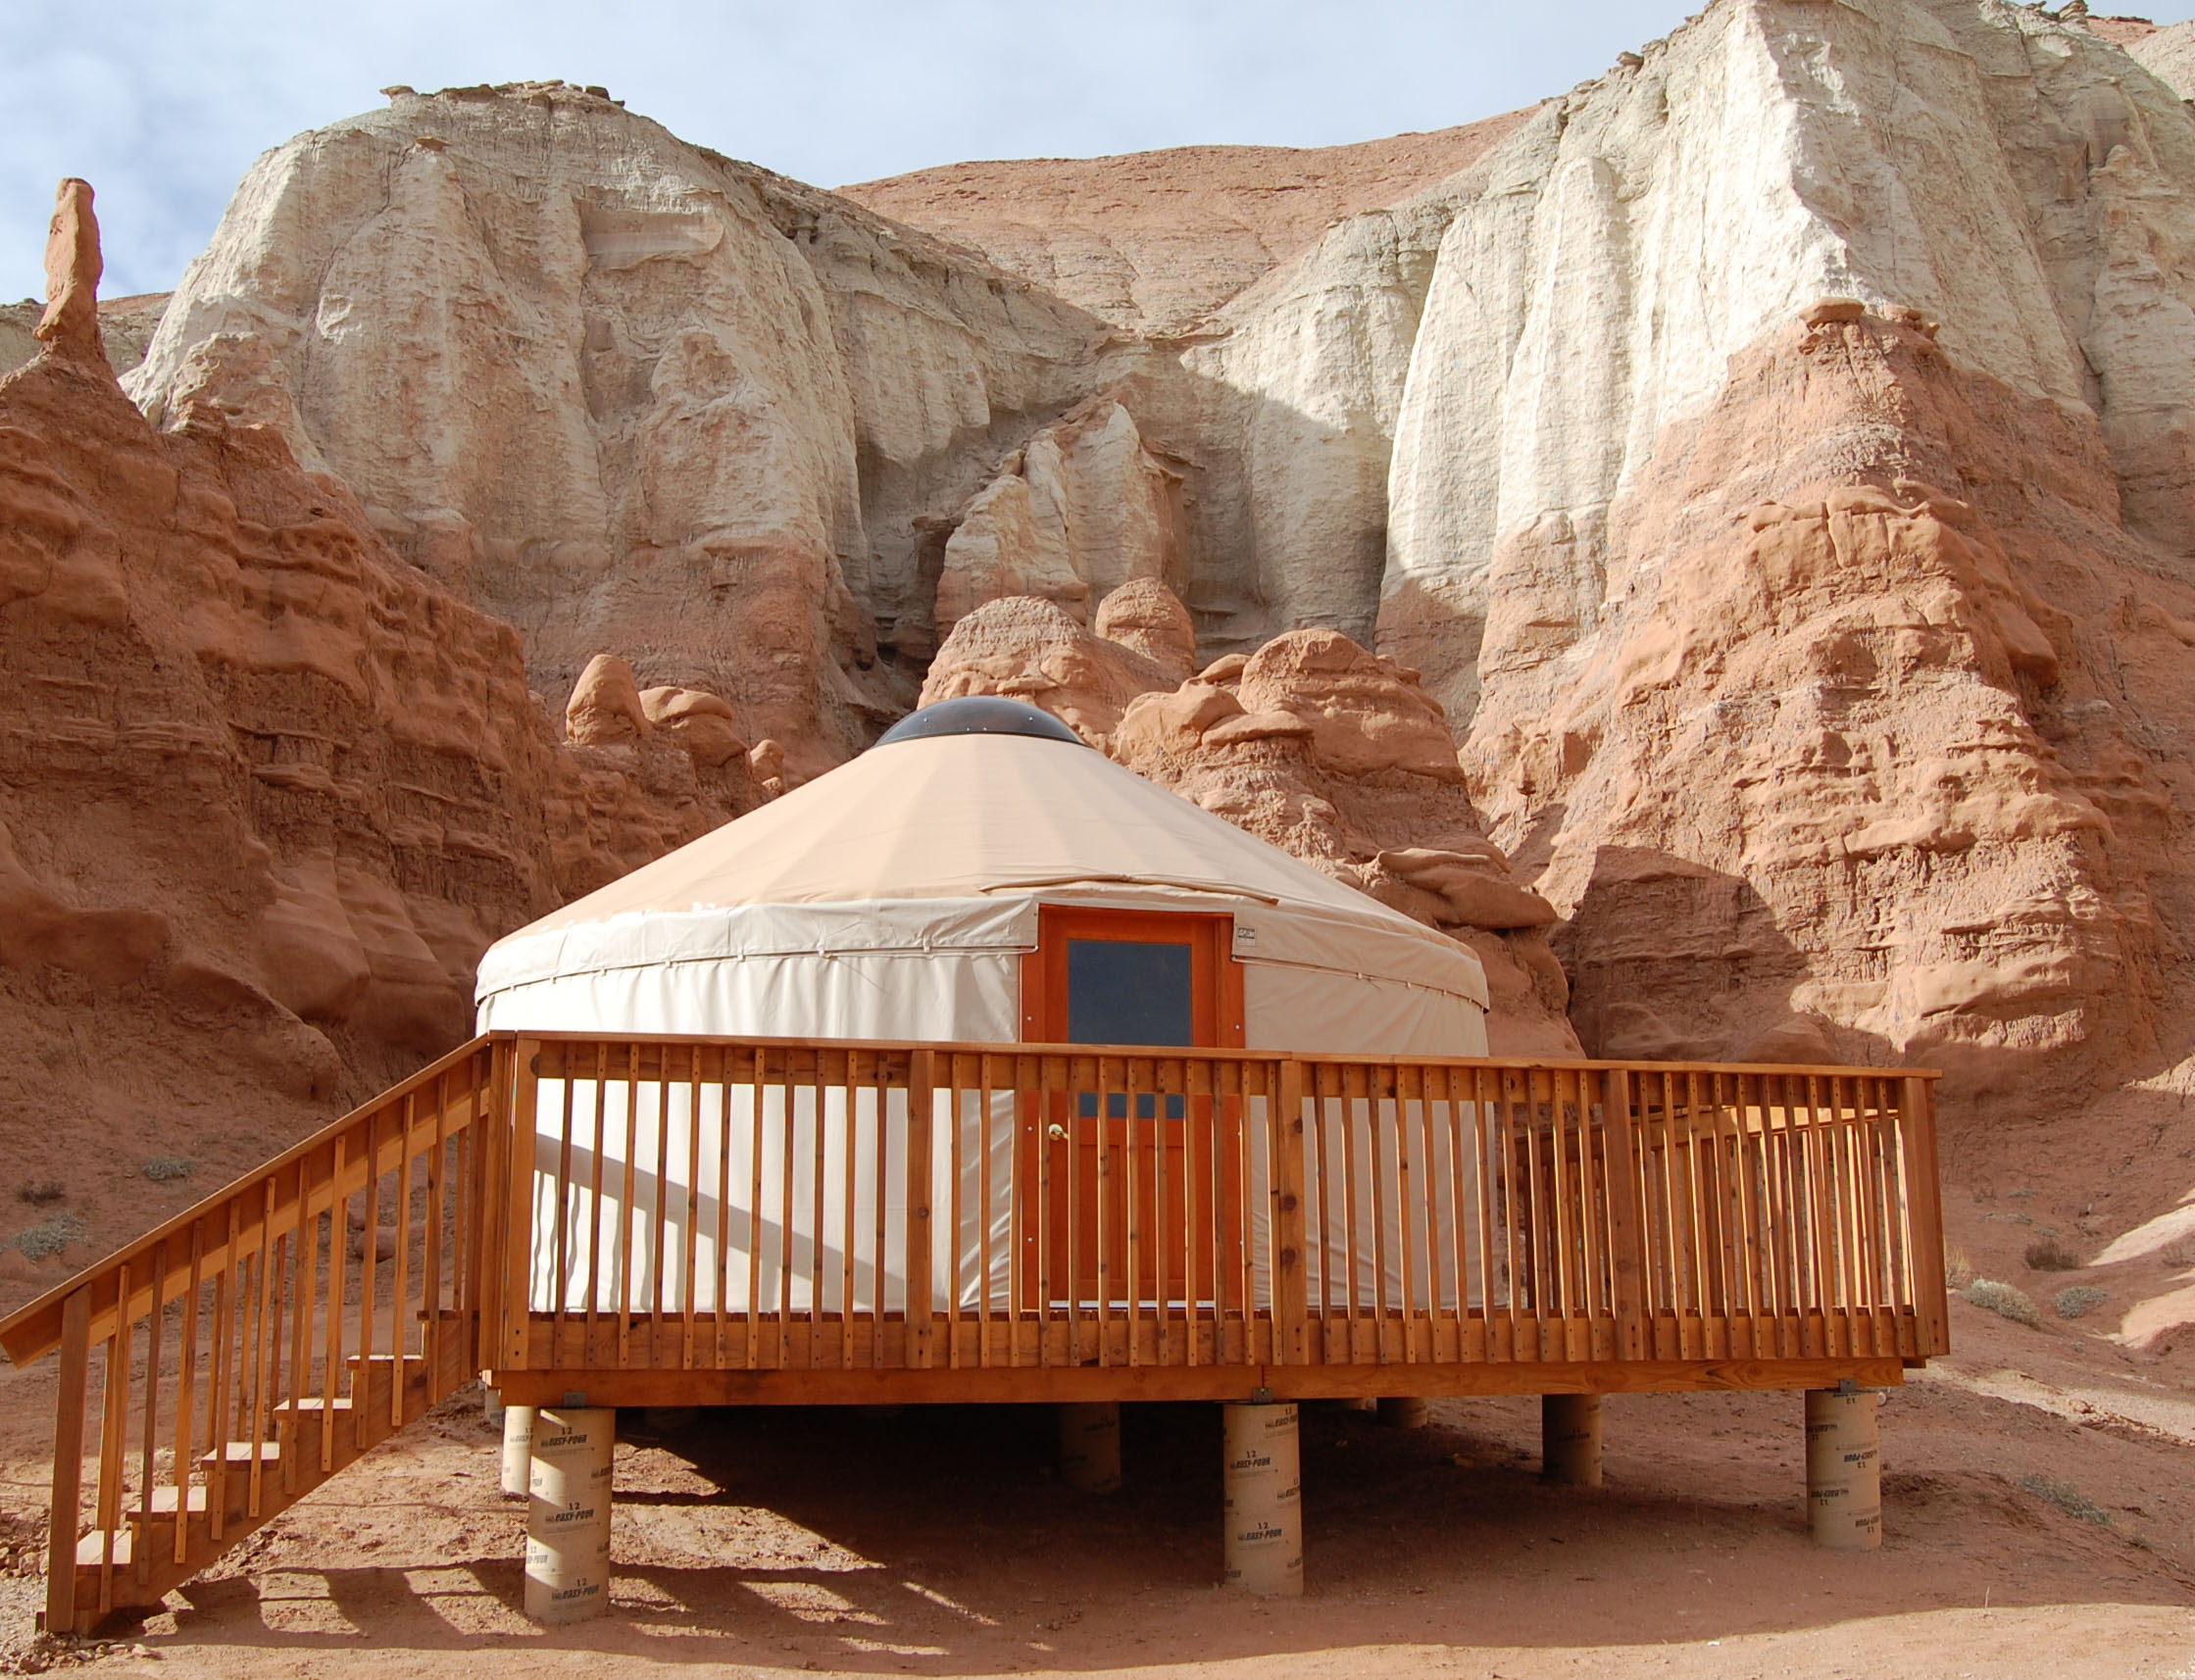 Yurts are available to rent at Goblin Valley